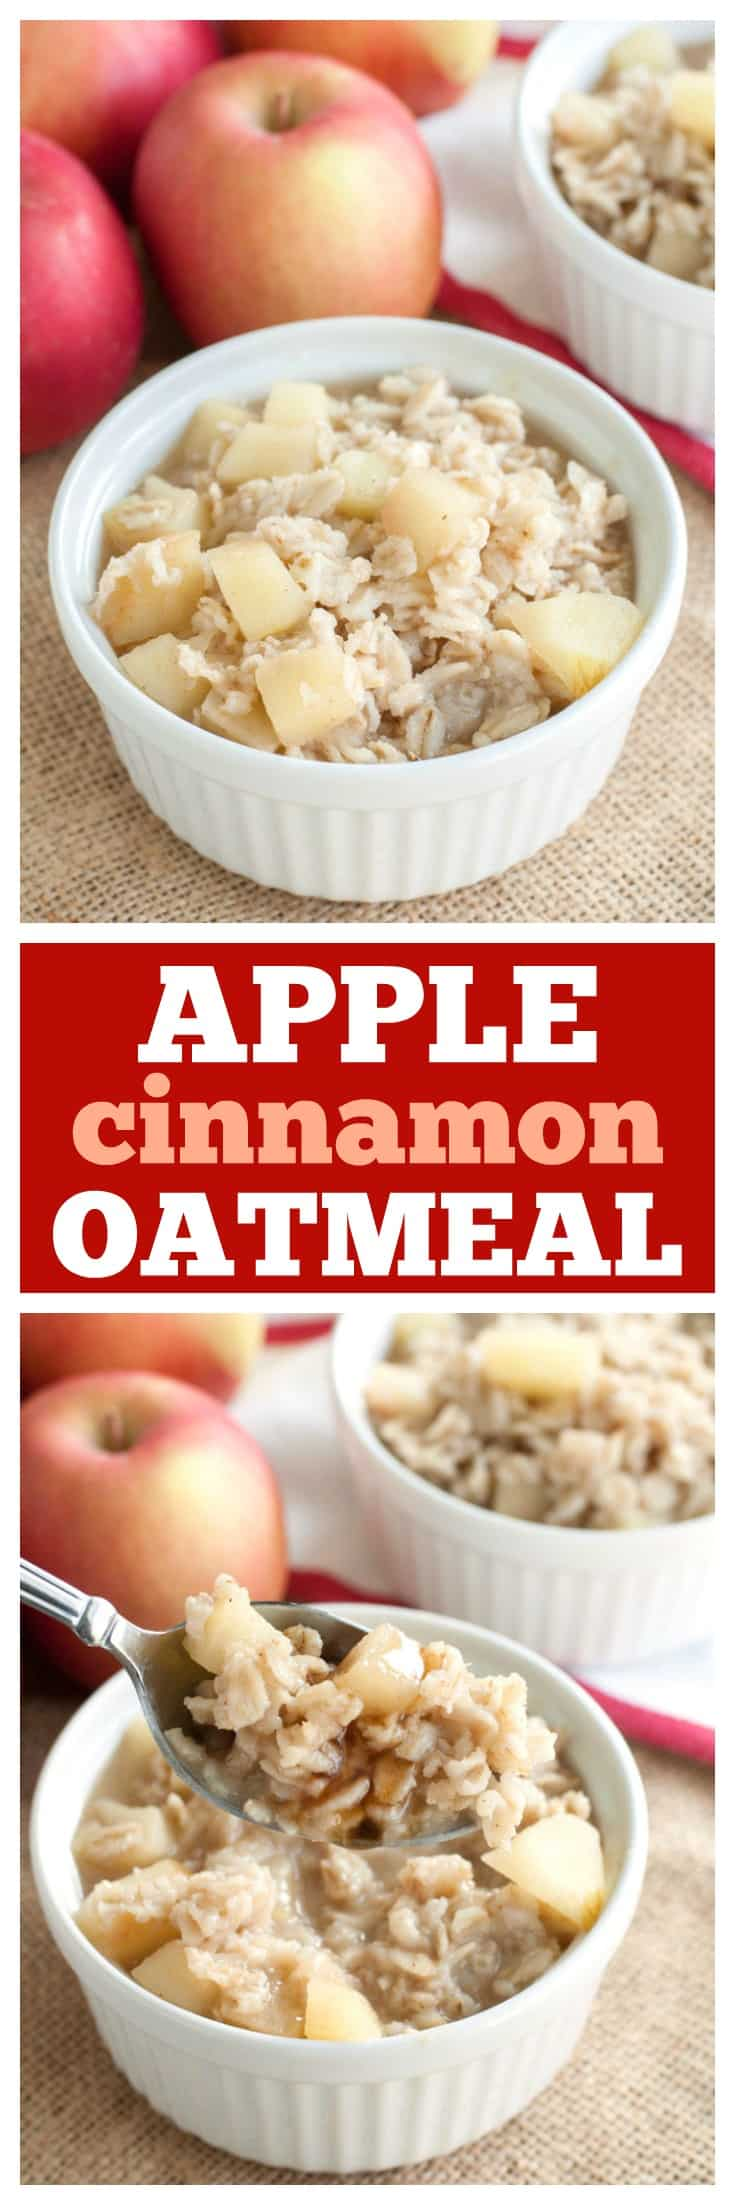 Apple Cinnamon Oatmeal Recipe with sore throat soothing ingredients